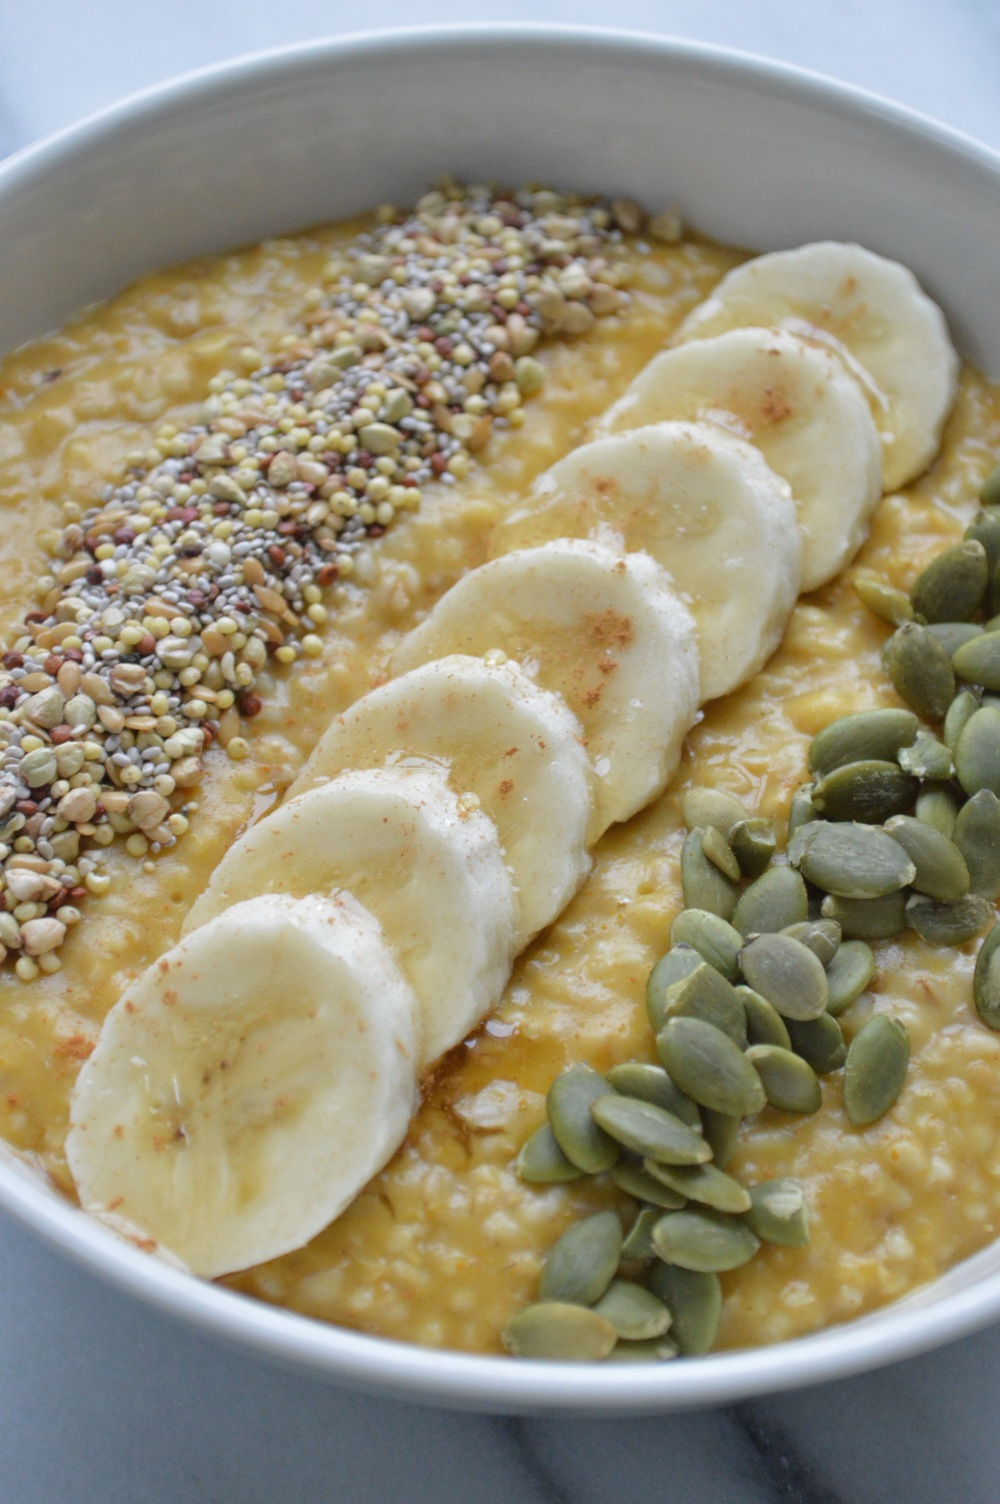 LaurenSchwaiger-Healthy-Life-Style-Blog-Steel-Cut-Pumpkin-Oatmeal.jpg